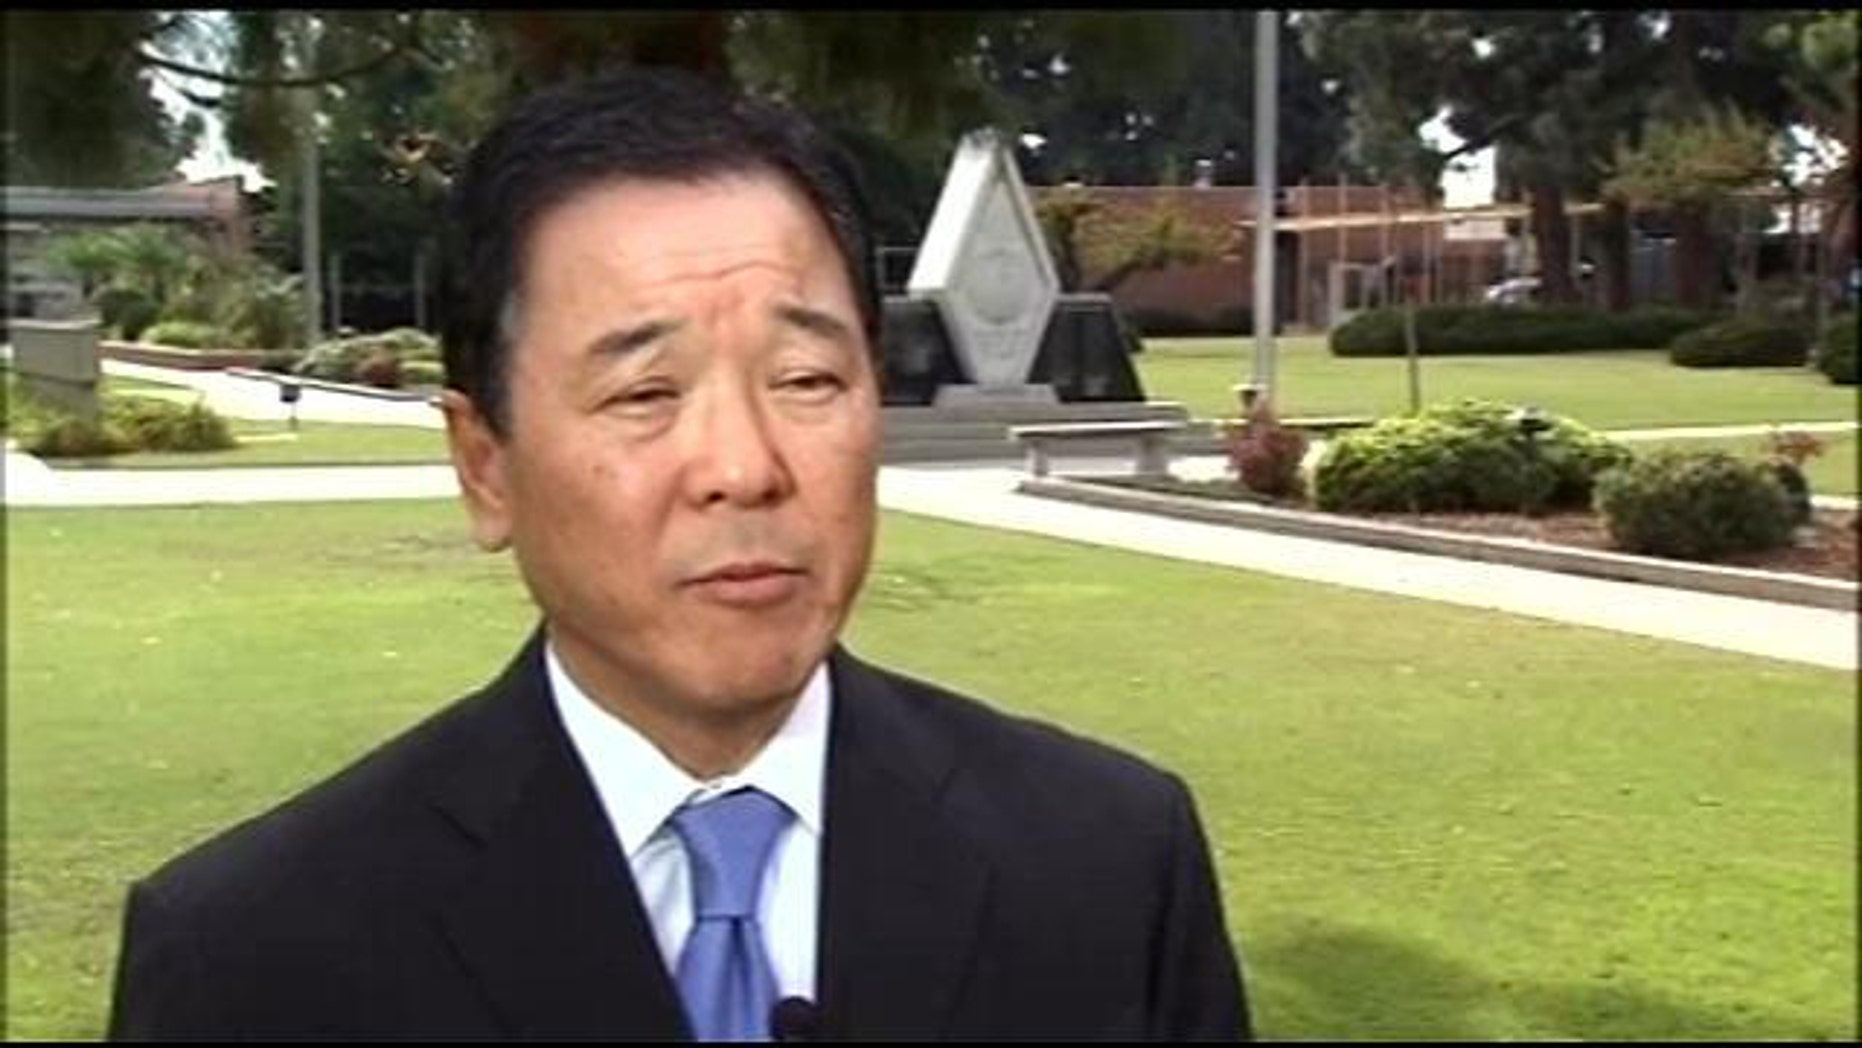 This undated photo shows former Los Angeles County Undersheriff Paul Tanaka (MyFoxLA.com)